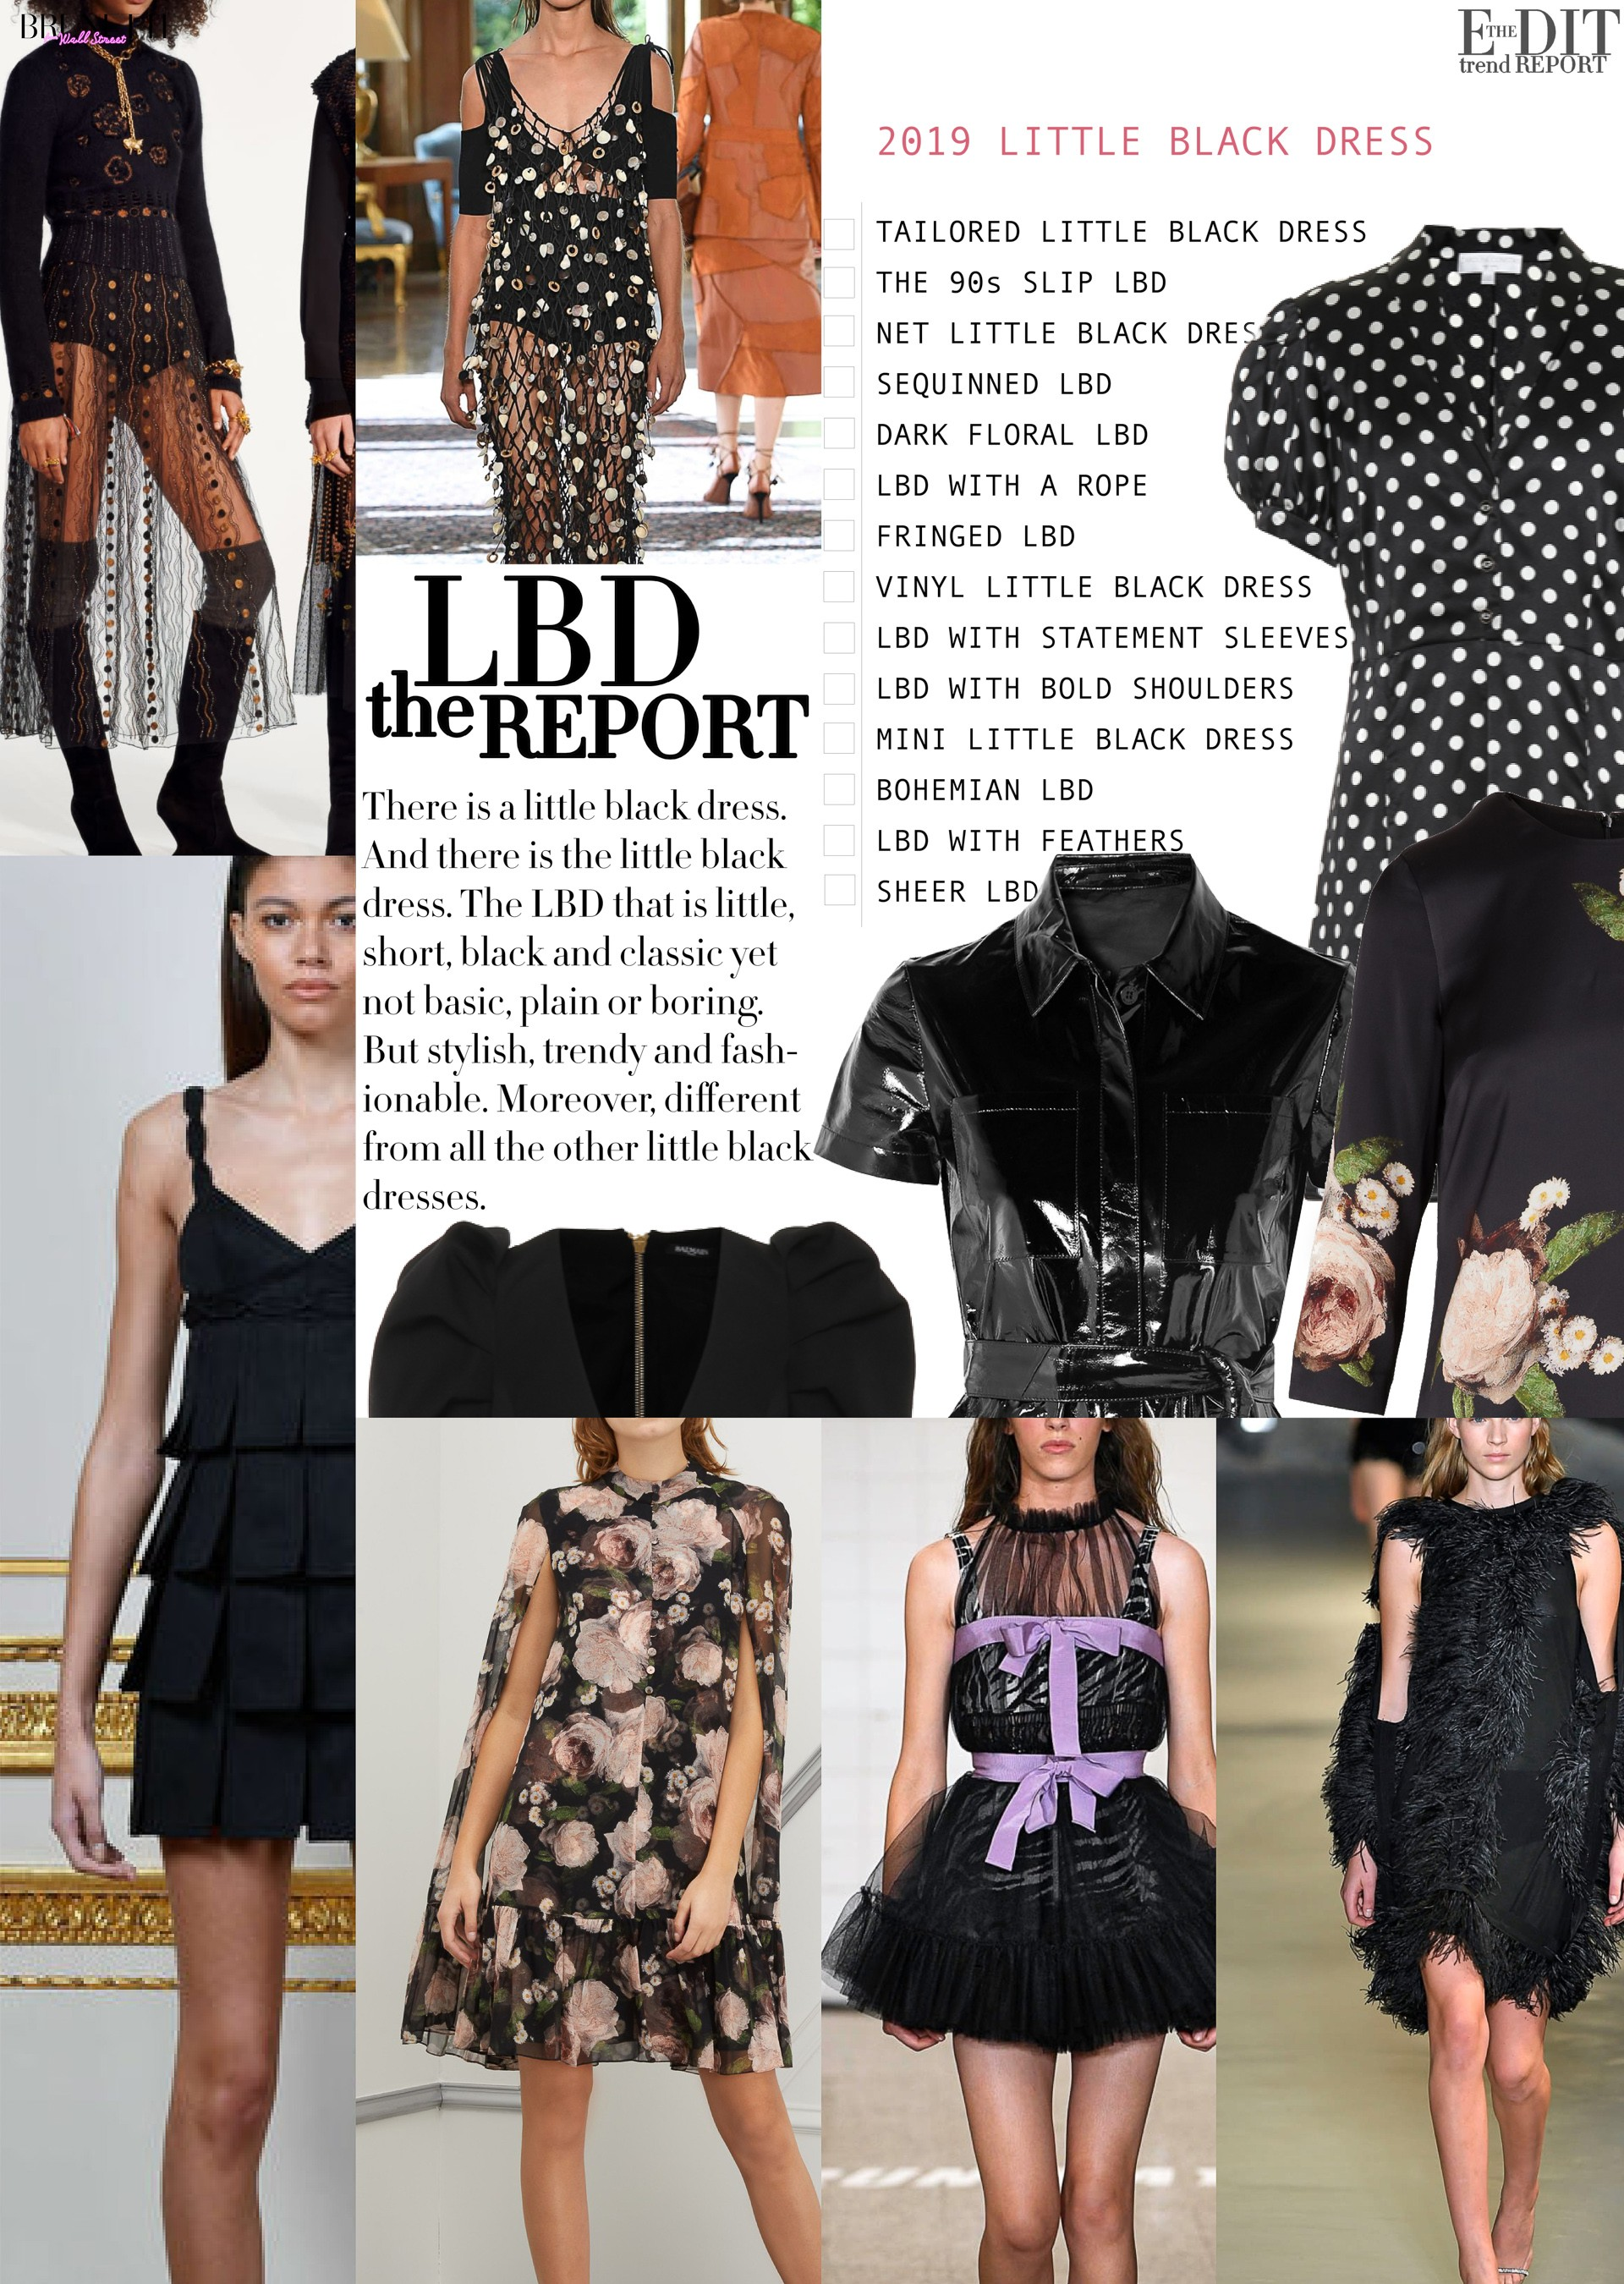 081a44bd475 ... black dresses that are not basic but have some details that distinguish  them from the rest of LBDs you already have. And these details are nothing  else ...